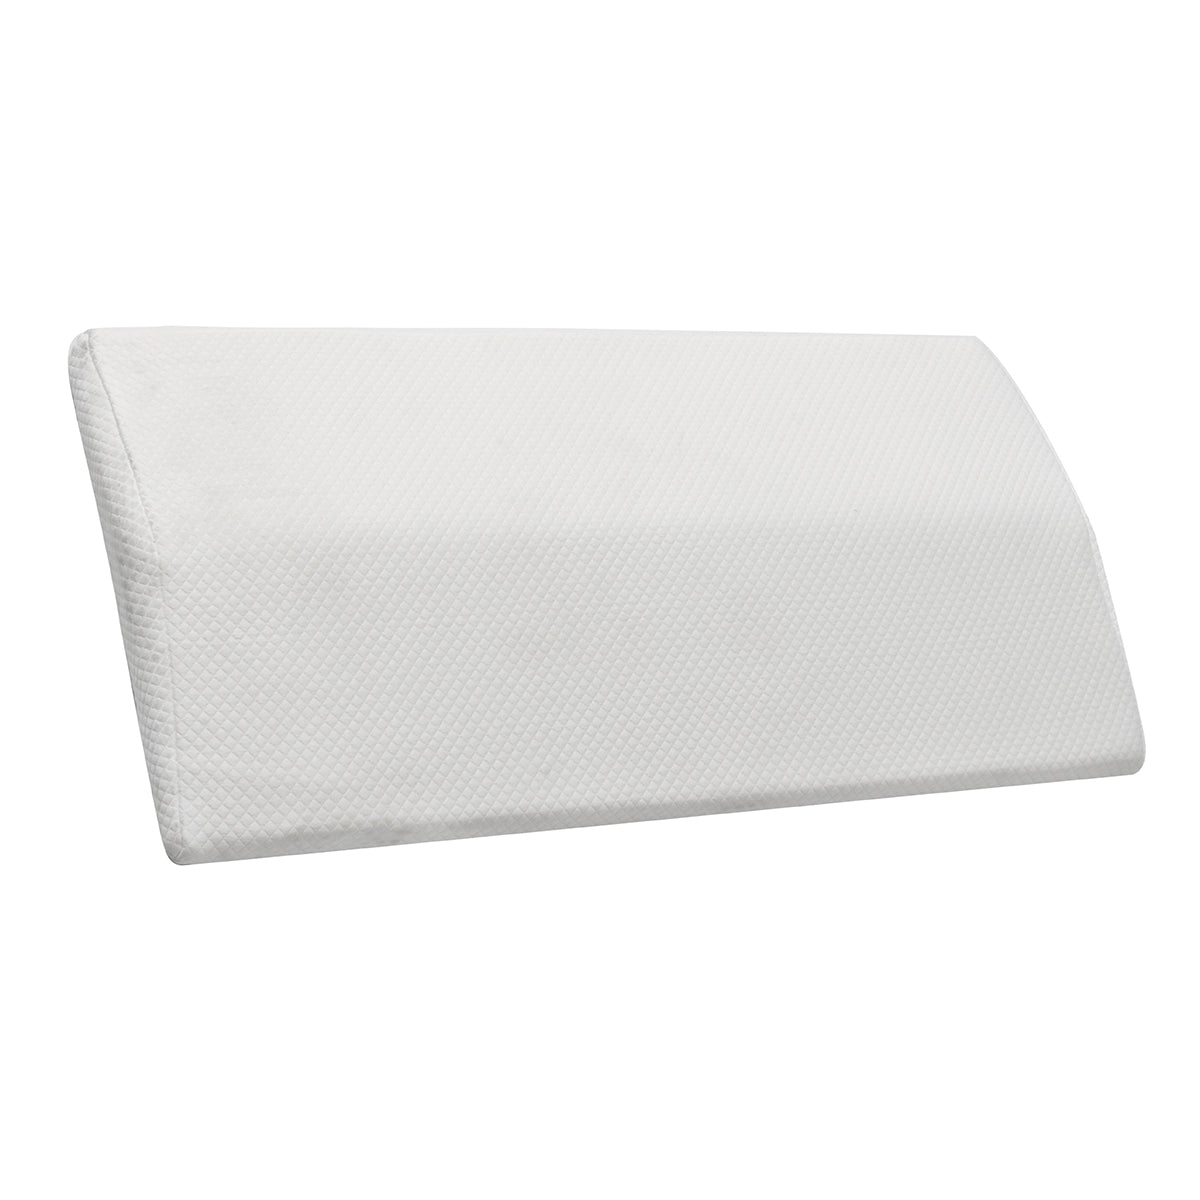 Memory Foam Lumbar Contour Sleeping Pillow